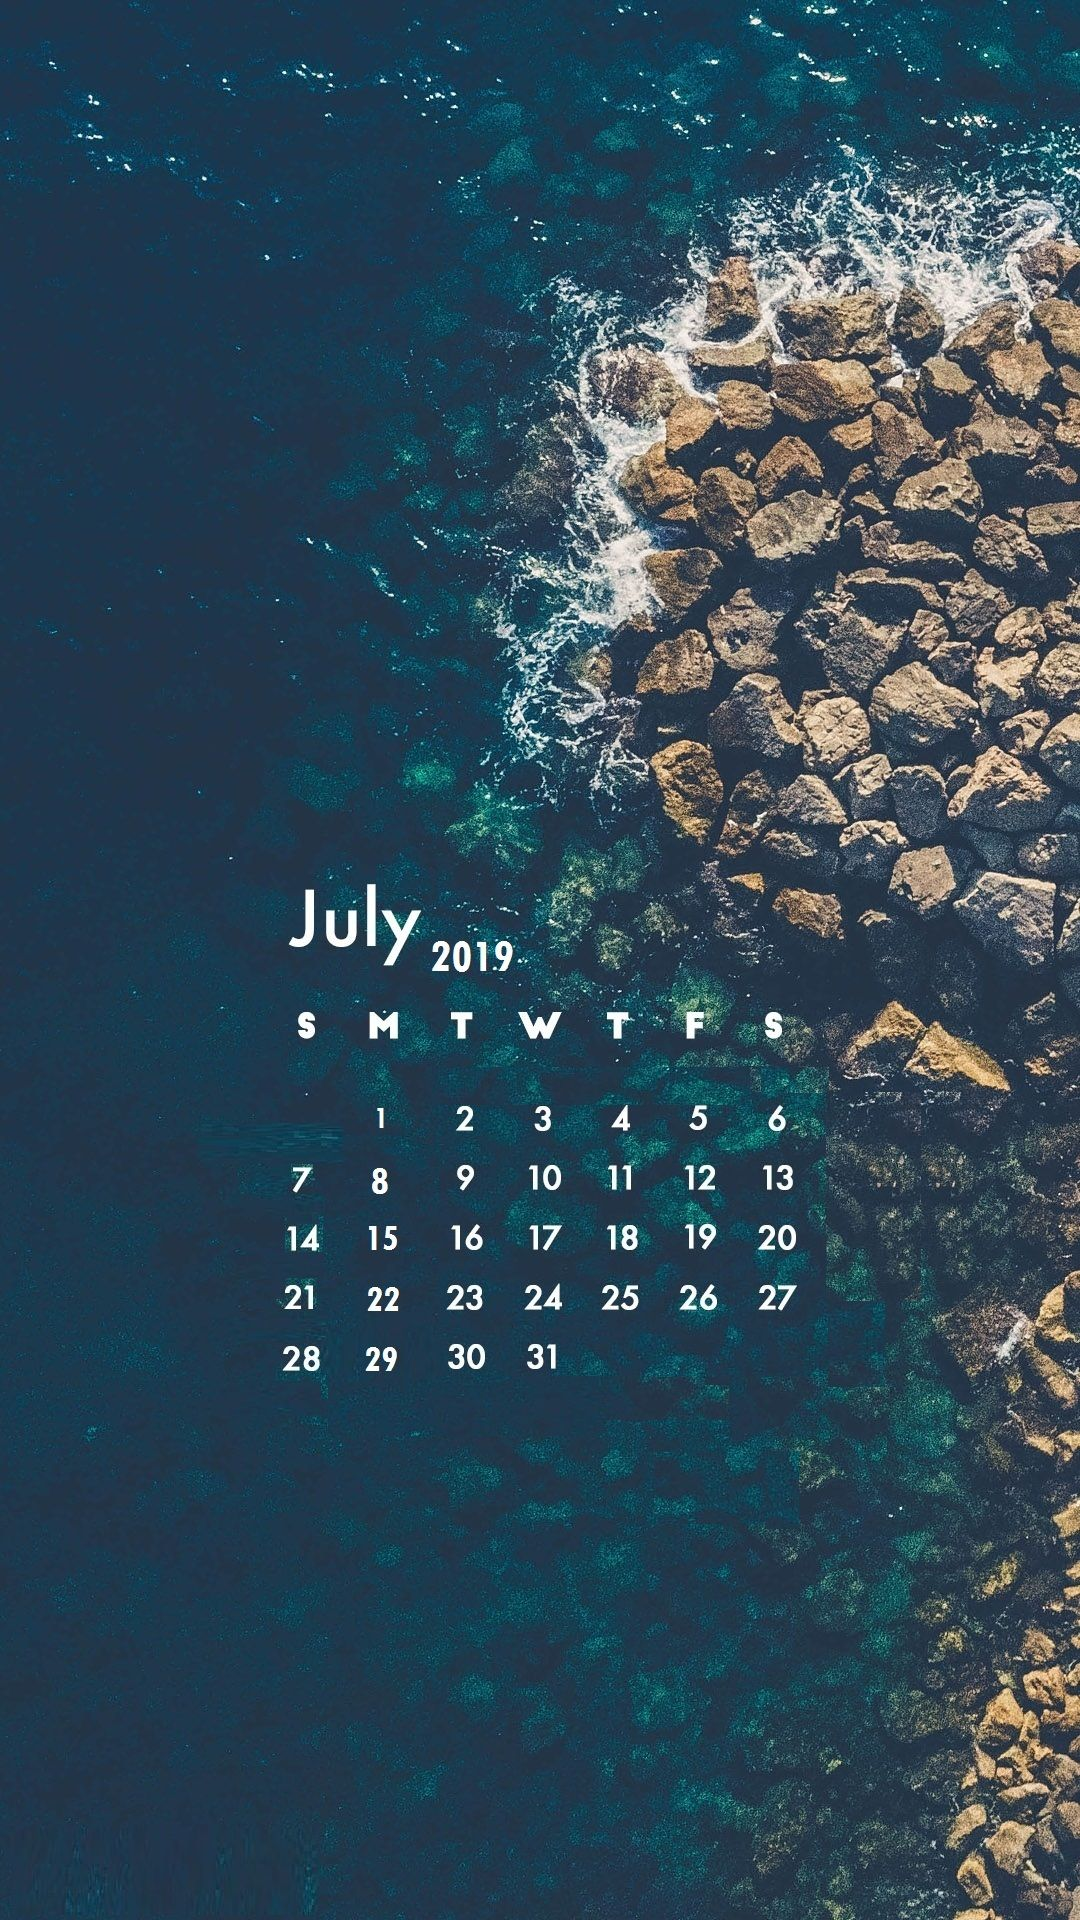 July 2019 iPhone Calendar Wallpaper